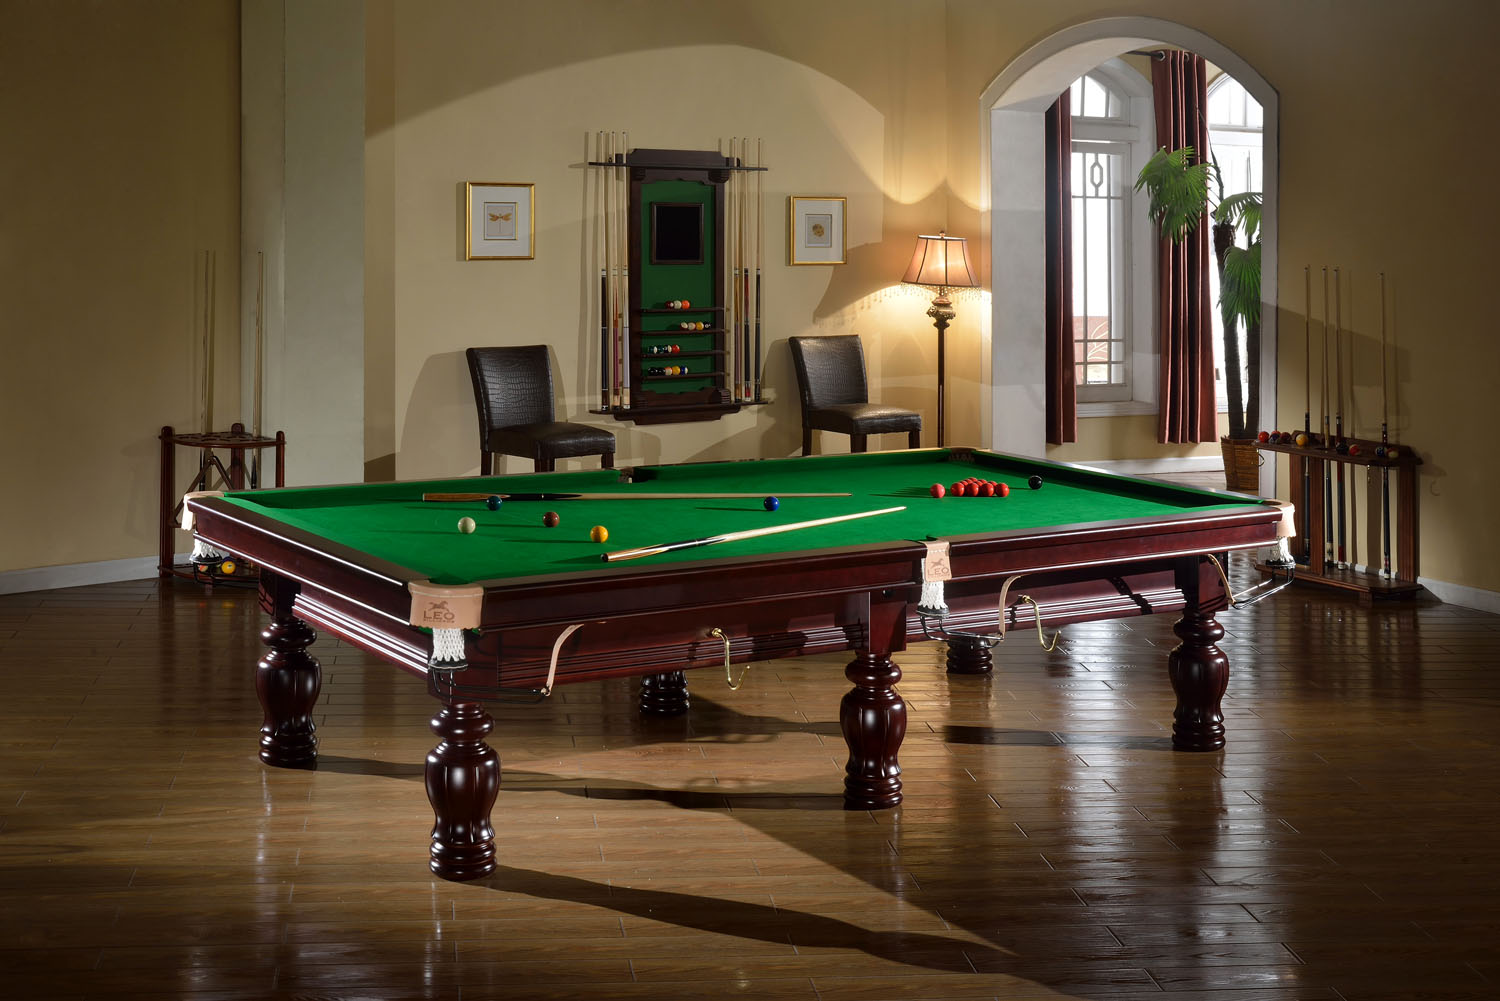 http://www.legobilliards.com.cn/upload/images/201506/14349415751357.jpg